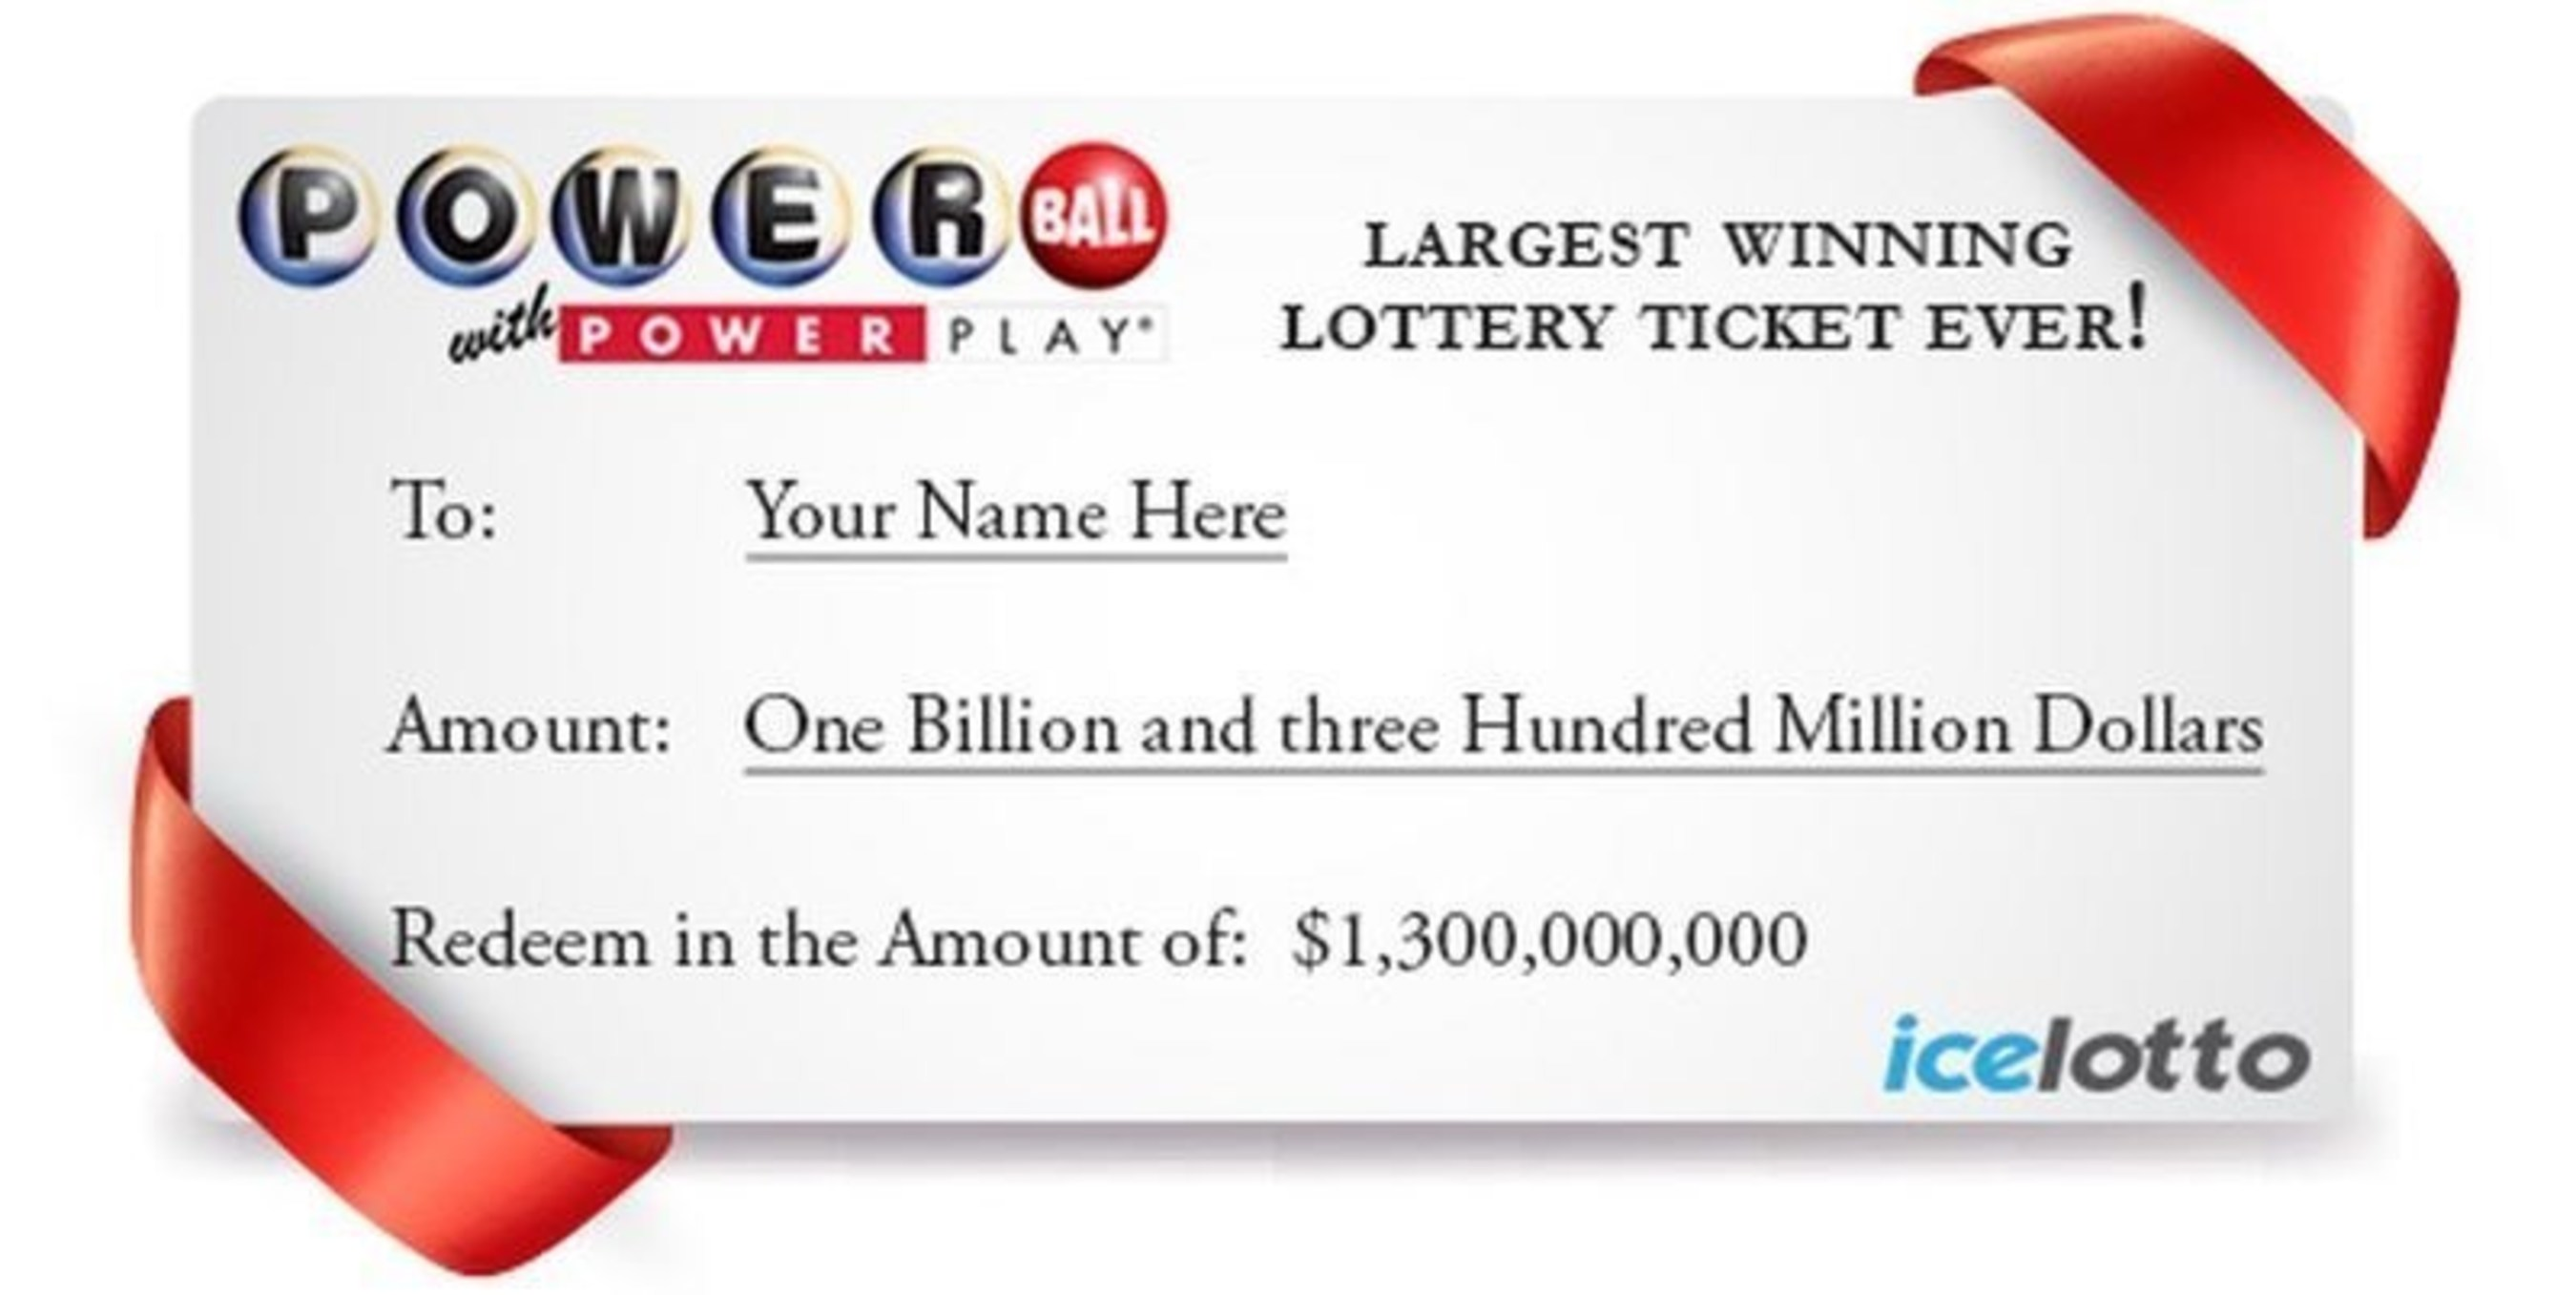 Buy your winning lottery tickets online with icelotto.com (PRNewsFoto/icelotto) (PRNewsFoto/icelotto)